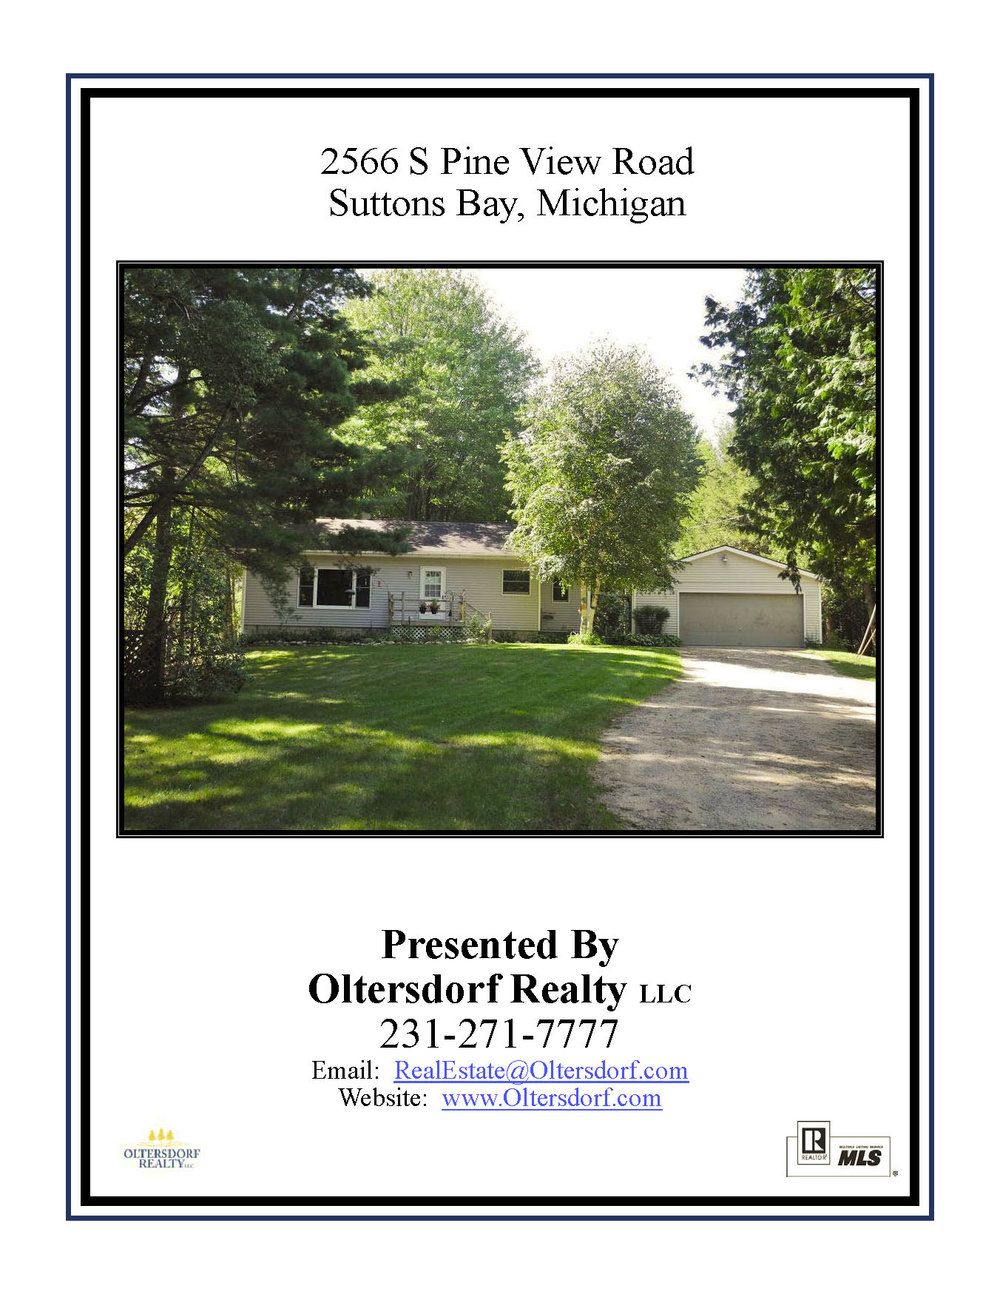 2566 S Pine View Road, Suttons Bay, MI – Affordable 3 Bedroom Suttons Bay Ranch Home for sale by Oltersdorf Realty - Marketing Packet (1).jpg